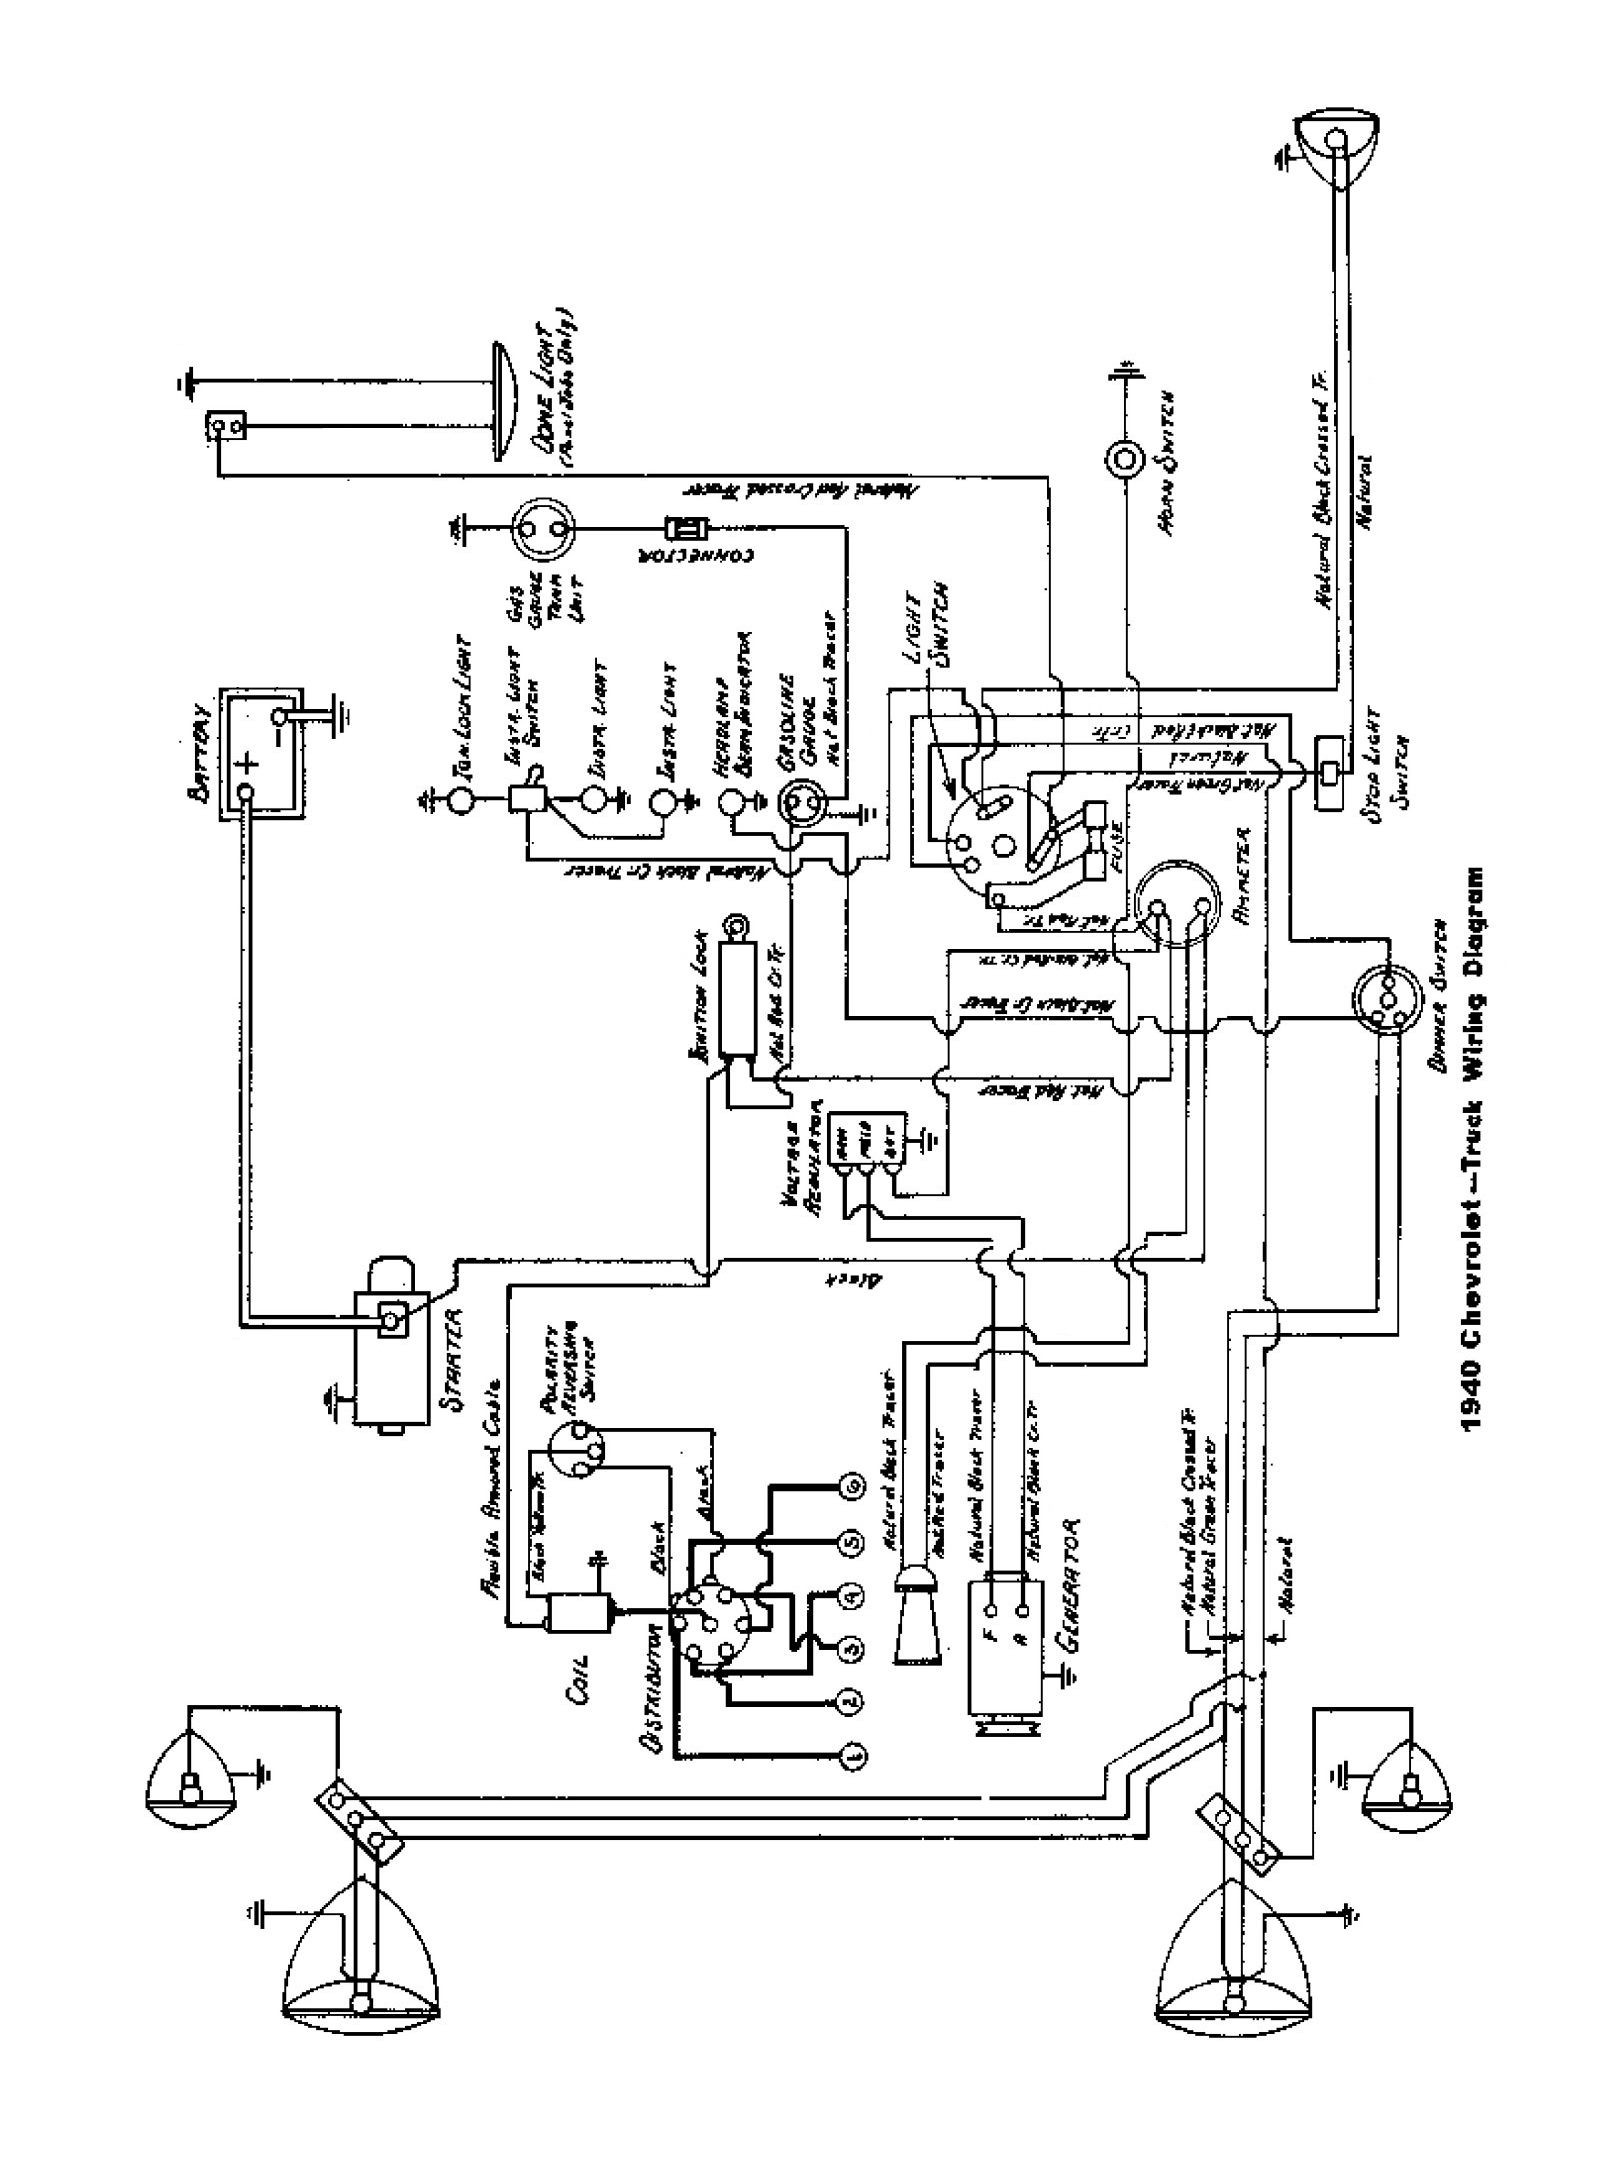 1953 chevy truck wiring diagram 1960 chevy wiring diagram 1960 chevy rh detoxicrecenze com 1952 chevy wiring harness 1953 chevrolet wiring diagram